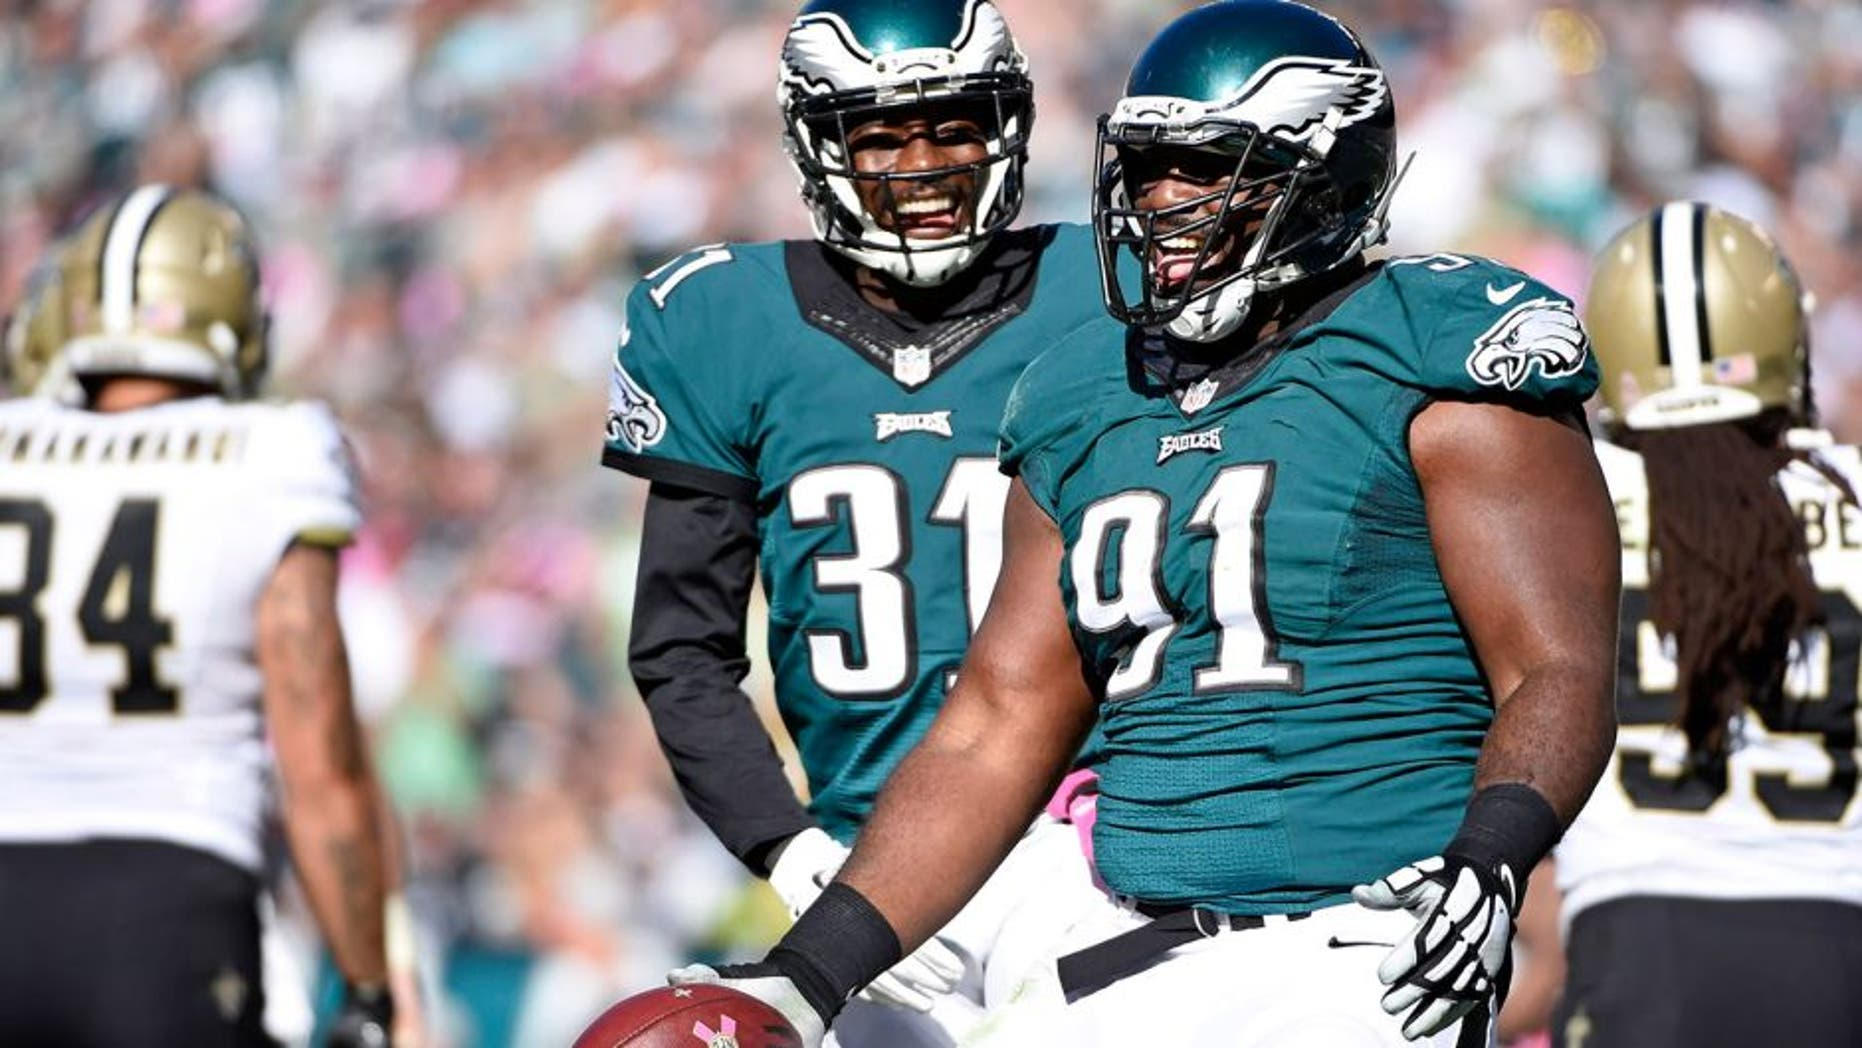 Oct 11, 2015; Philadelphia, PA, USA; Philadelphia Eagles defensive end Fletcher Cox (91) celebrates after recovering a fumble against the New Orleans Saints at Lincoln Financial Field. Mandatory Credit: Eric Hartline-USA TODAY Sports